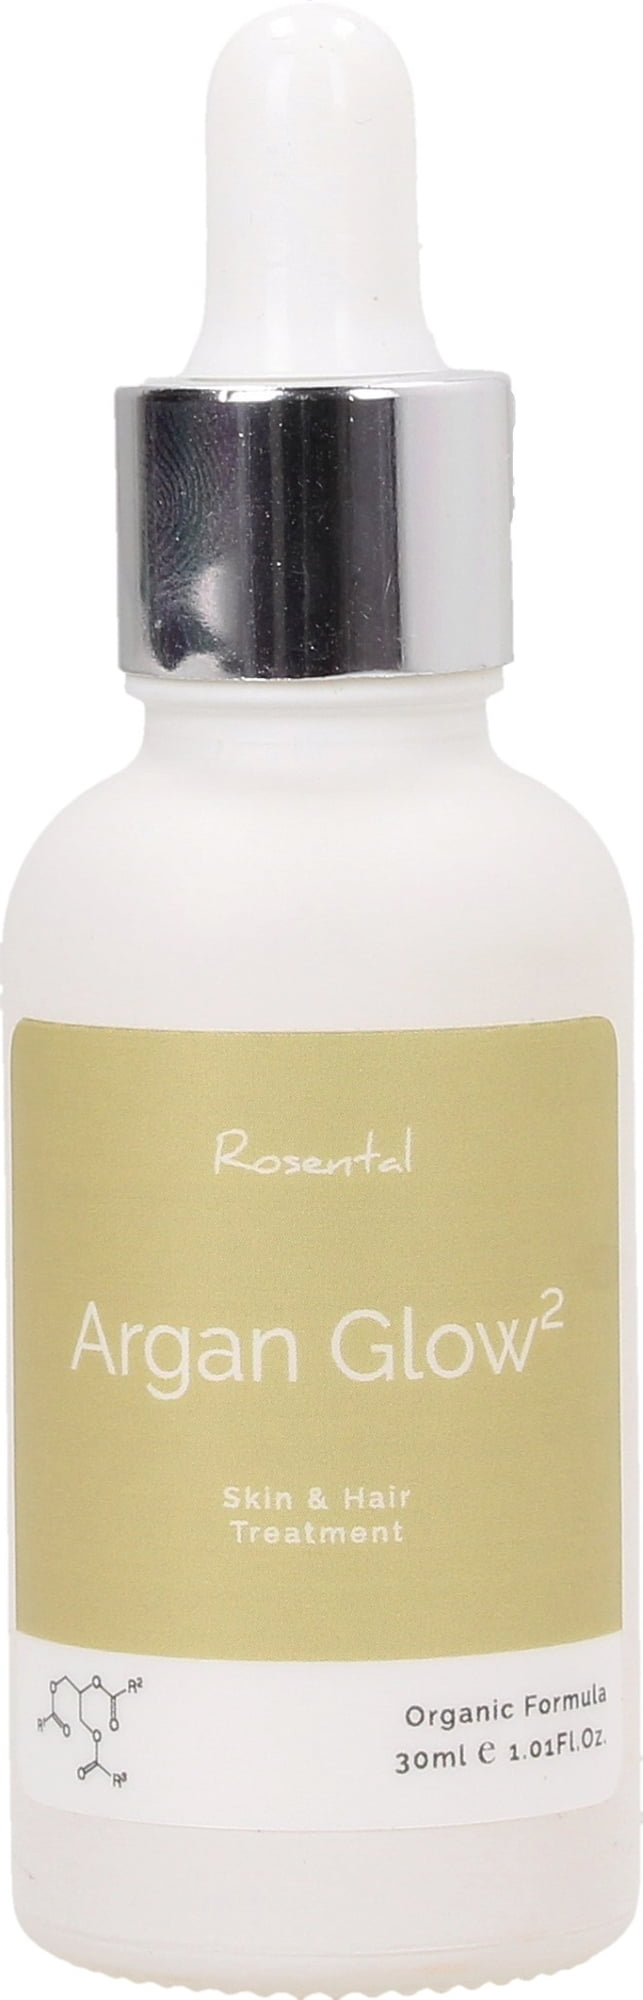 Rosental Organics Argan Glow² Hair & Skin Oil